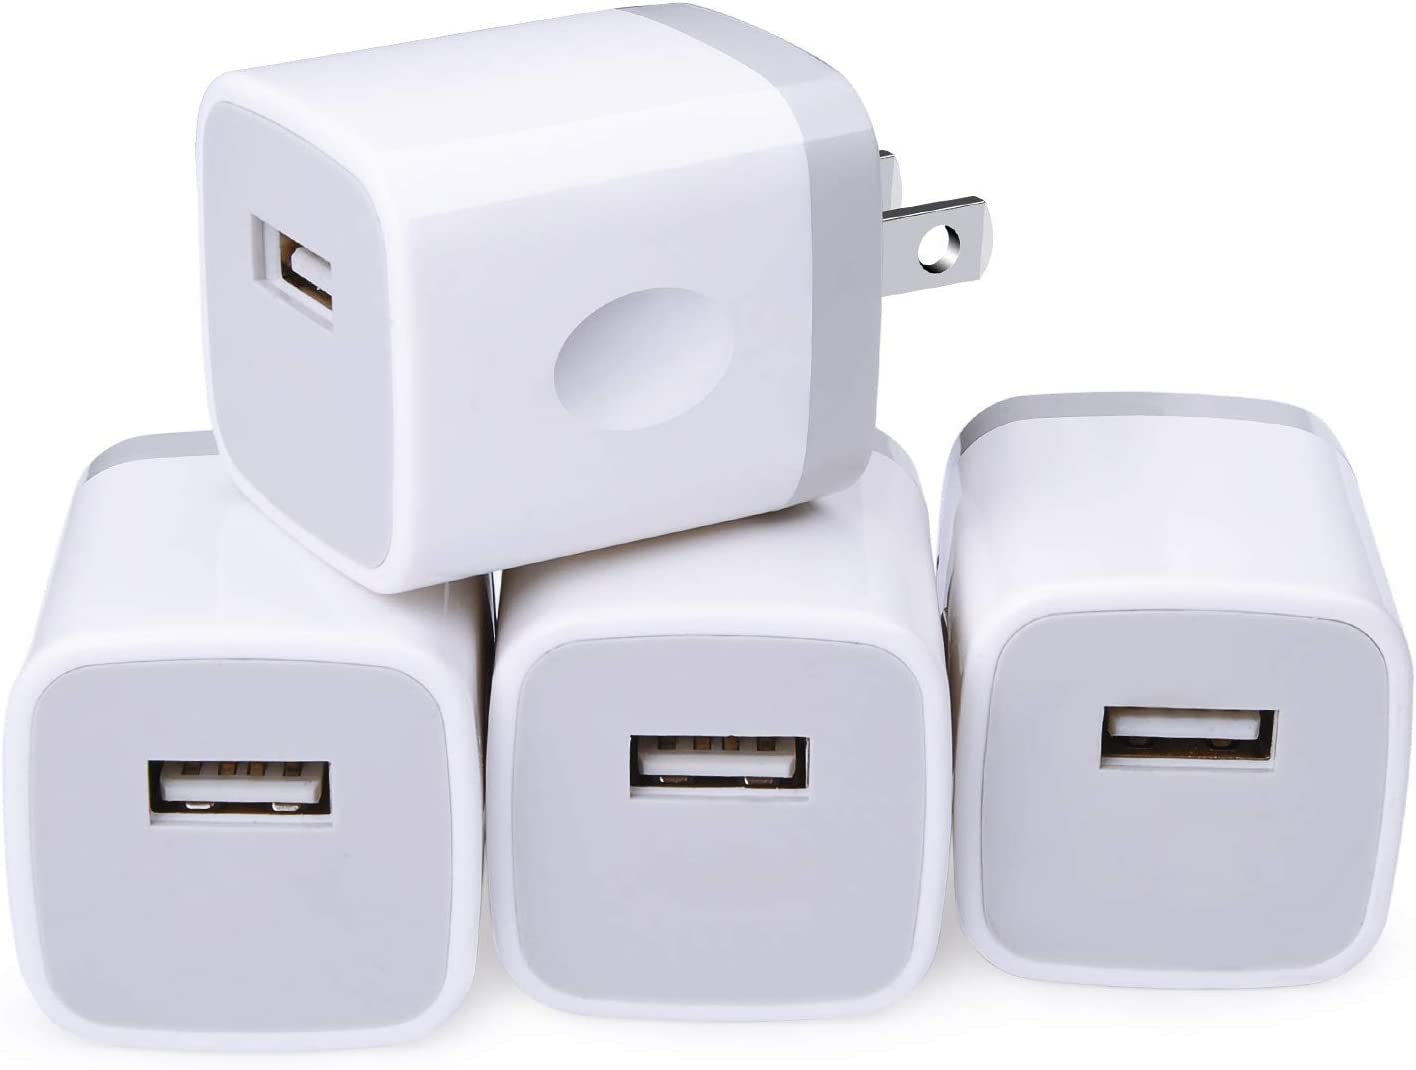 Charging Cube for iPhone, Charger Block, Power Bricks, NonoUV 4-Pack Single Port USB Plug in Wall Charger Adapter Charger Box for iPhone SE 11 Pro Max XR XS X 8 7 6 6s Plus, Samsung, Android, Kindle